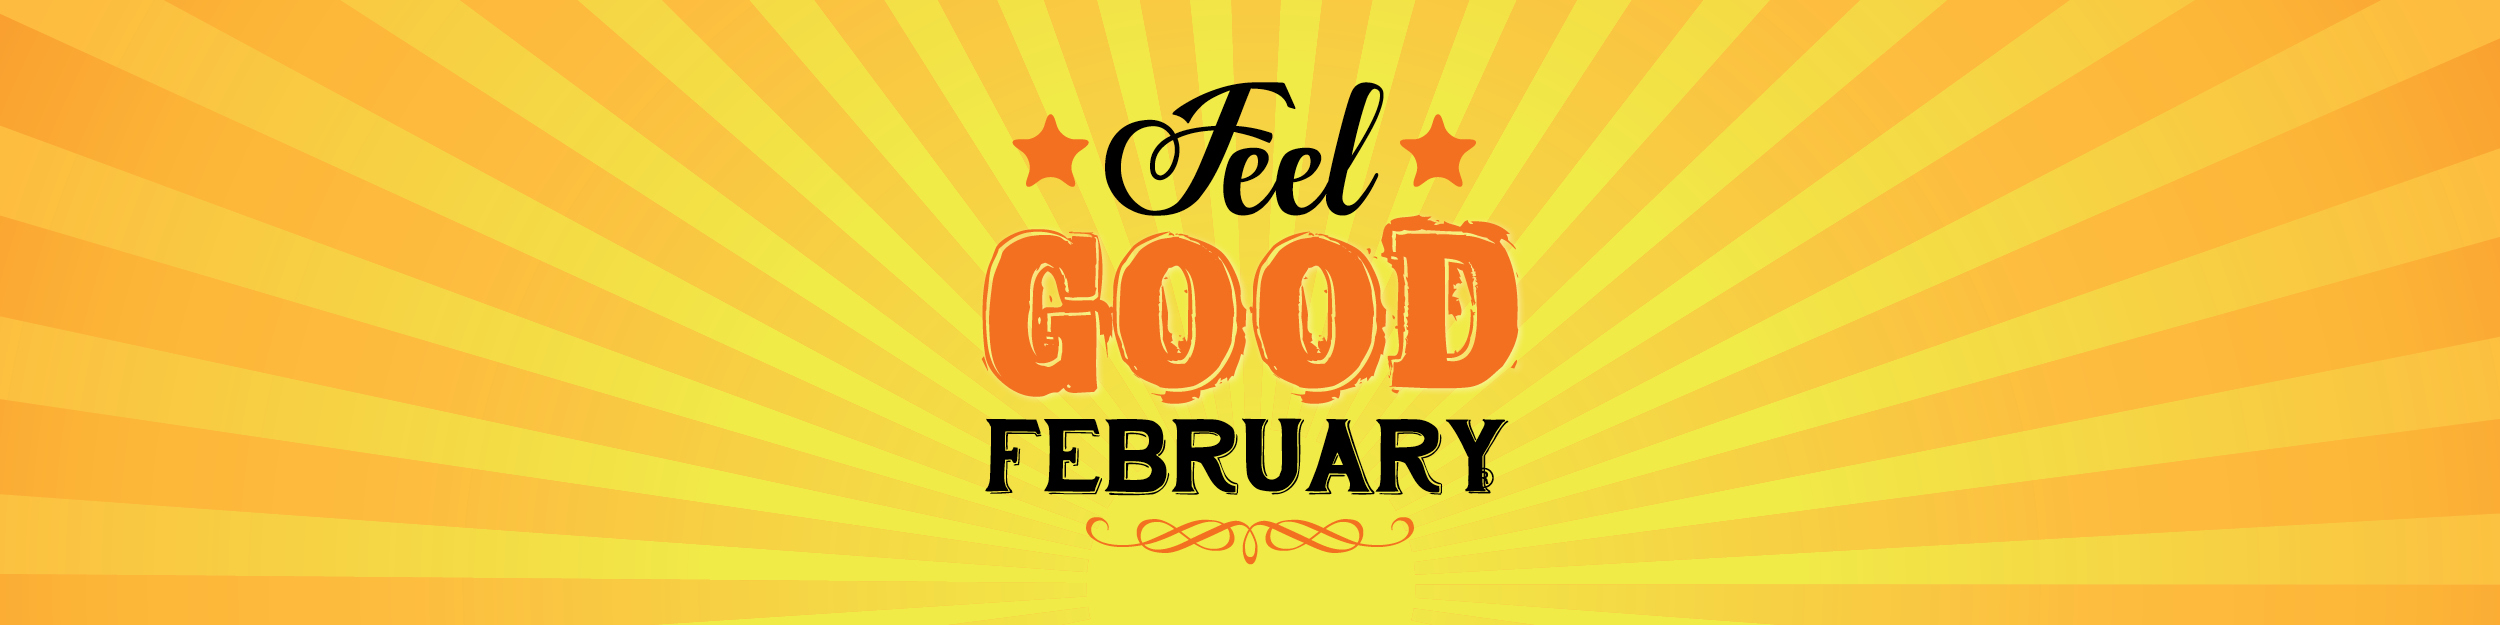 Feel Good Feb